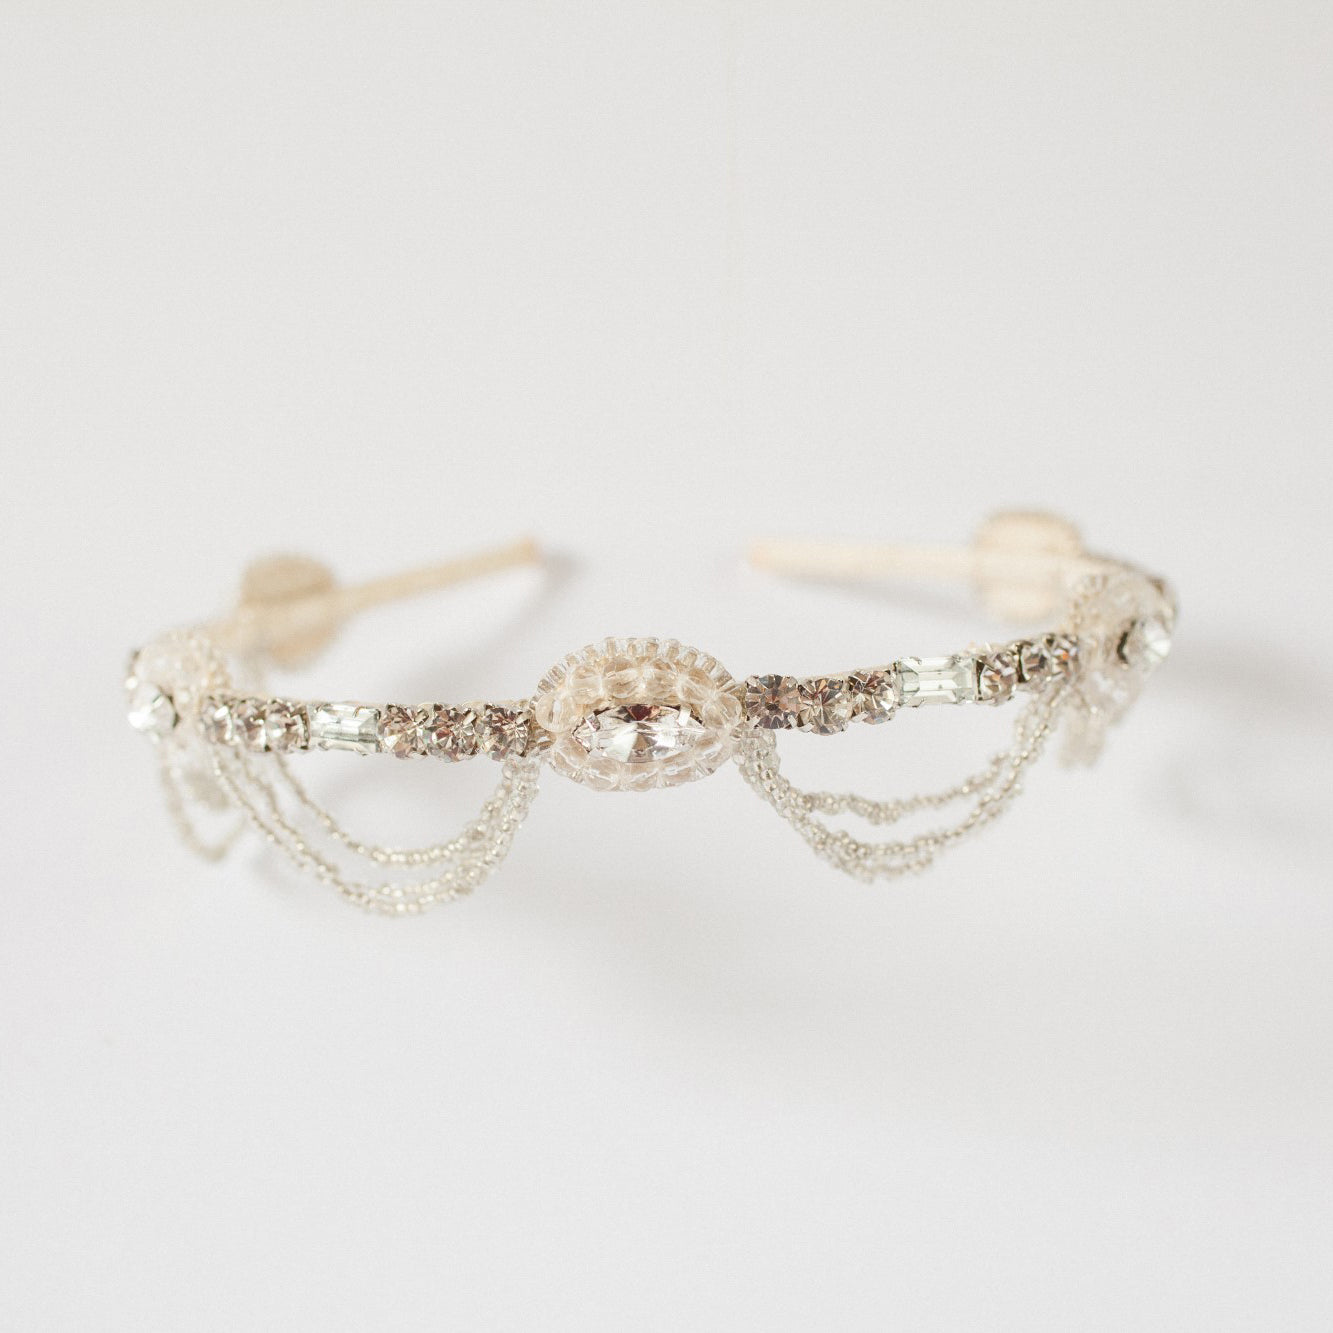 Orlee crystal wedding headband